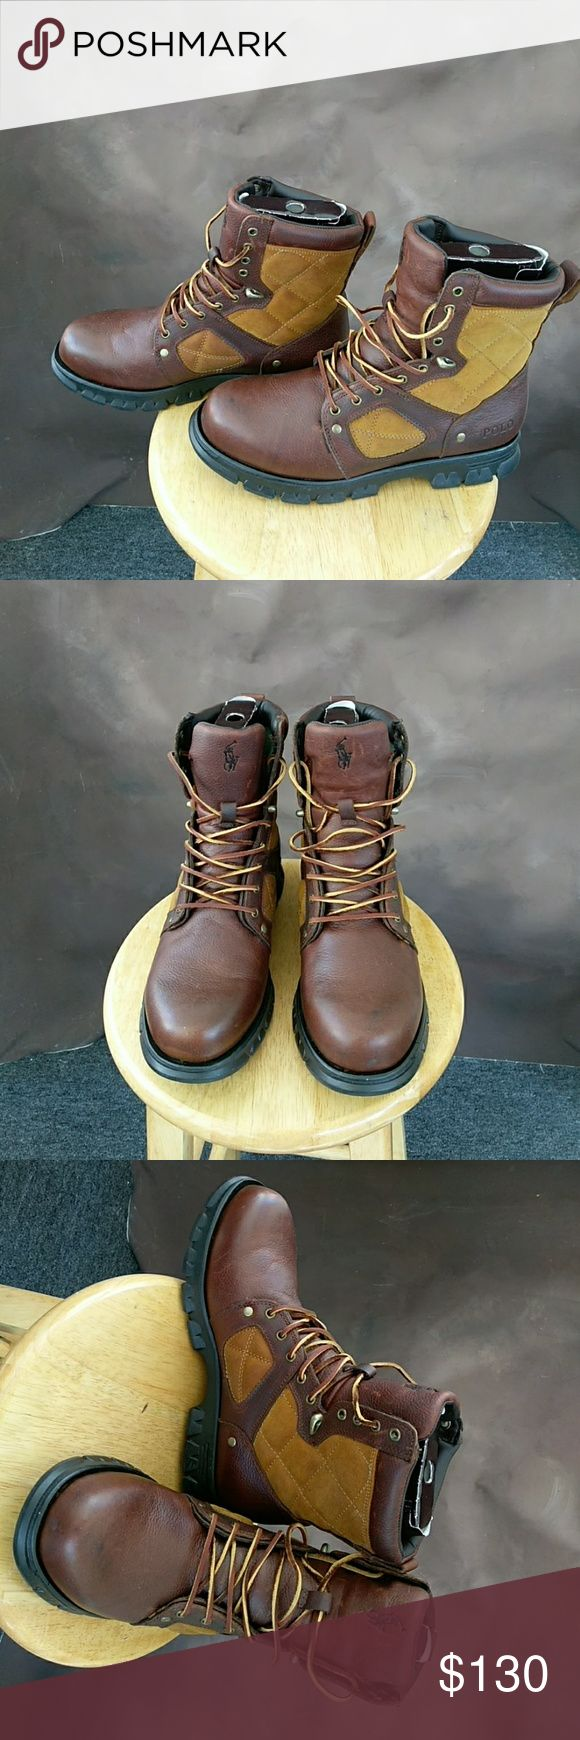 Polo Ralph Lauren boots Only worn twice in great condition still with the box Ralph Lauren Shoes Boots